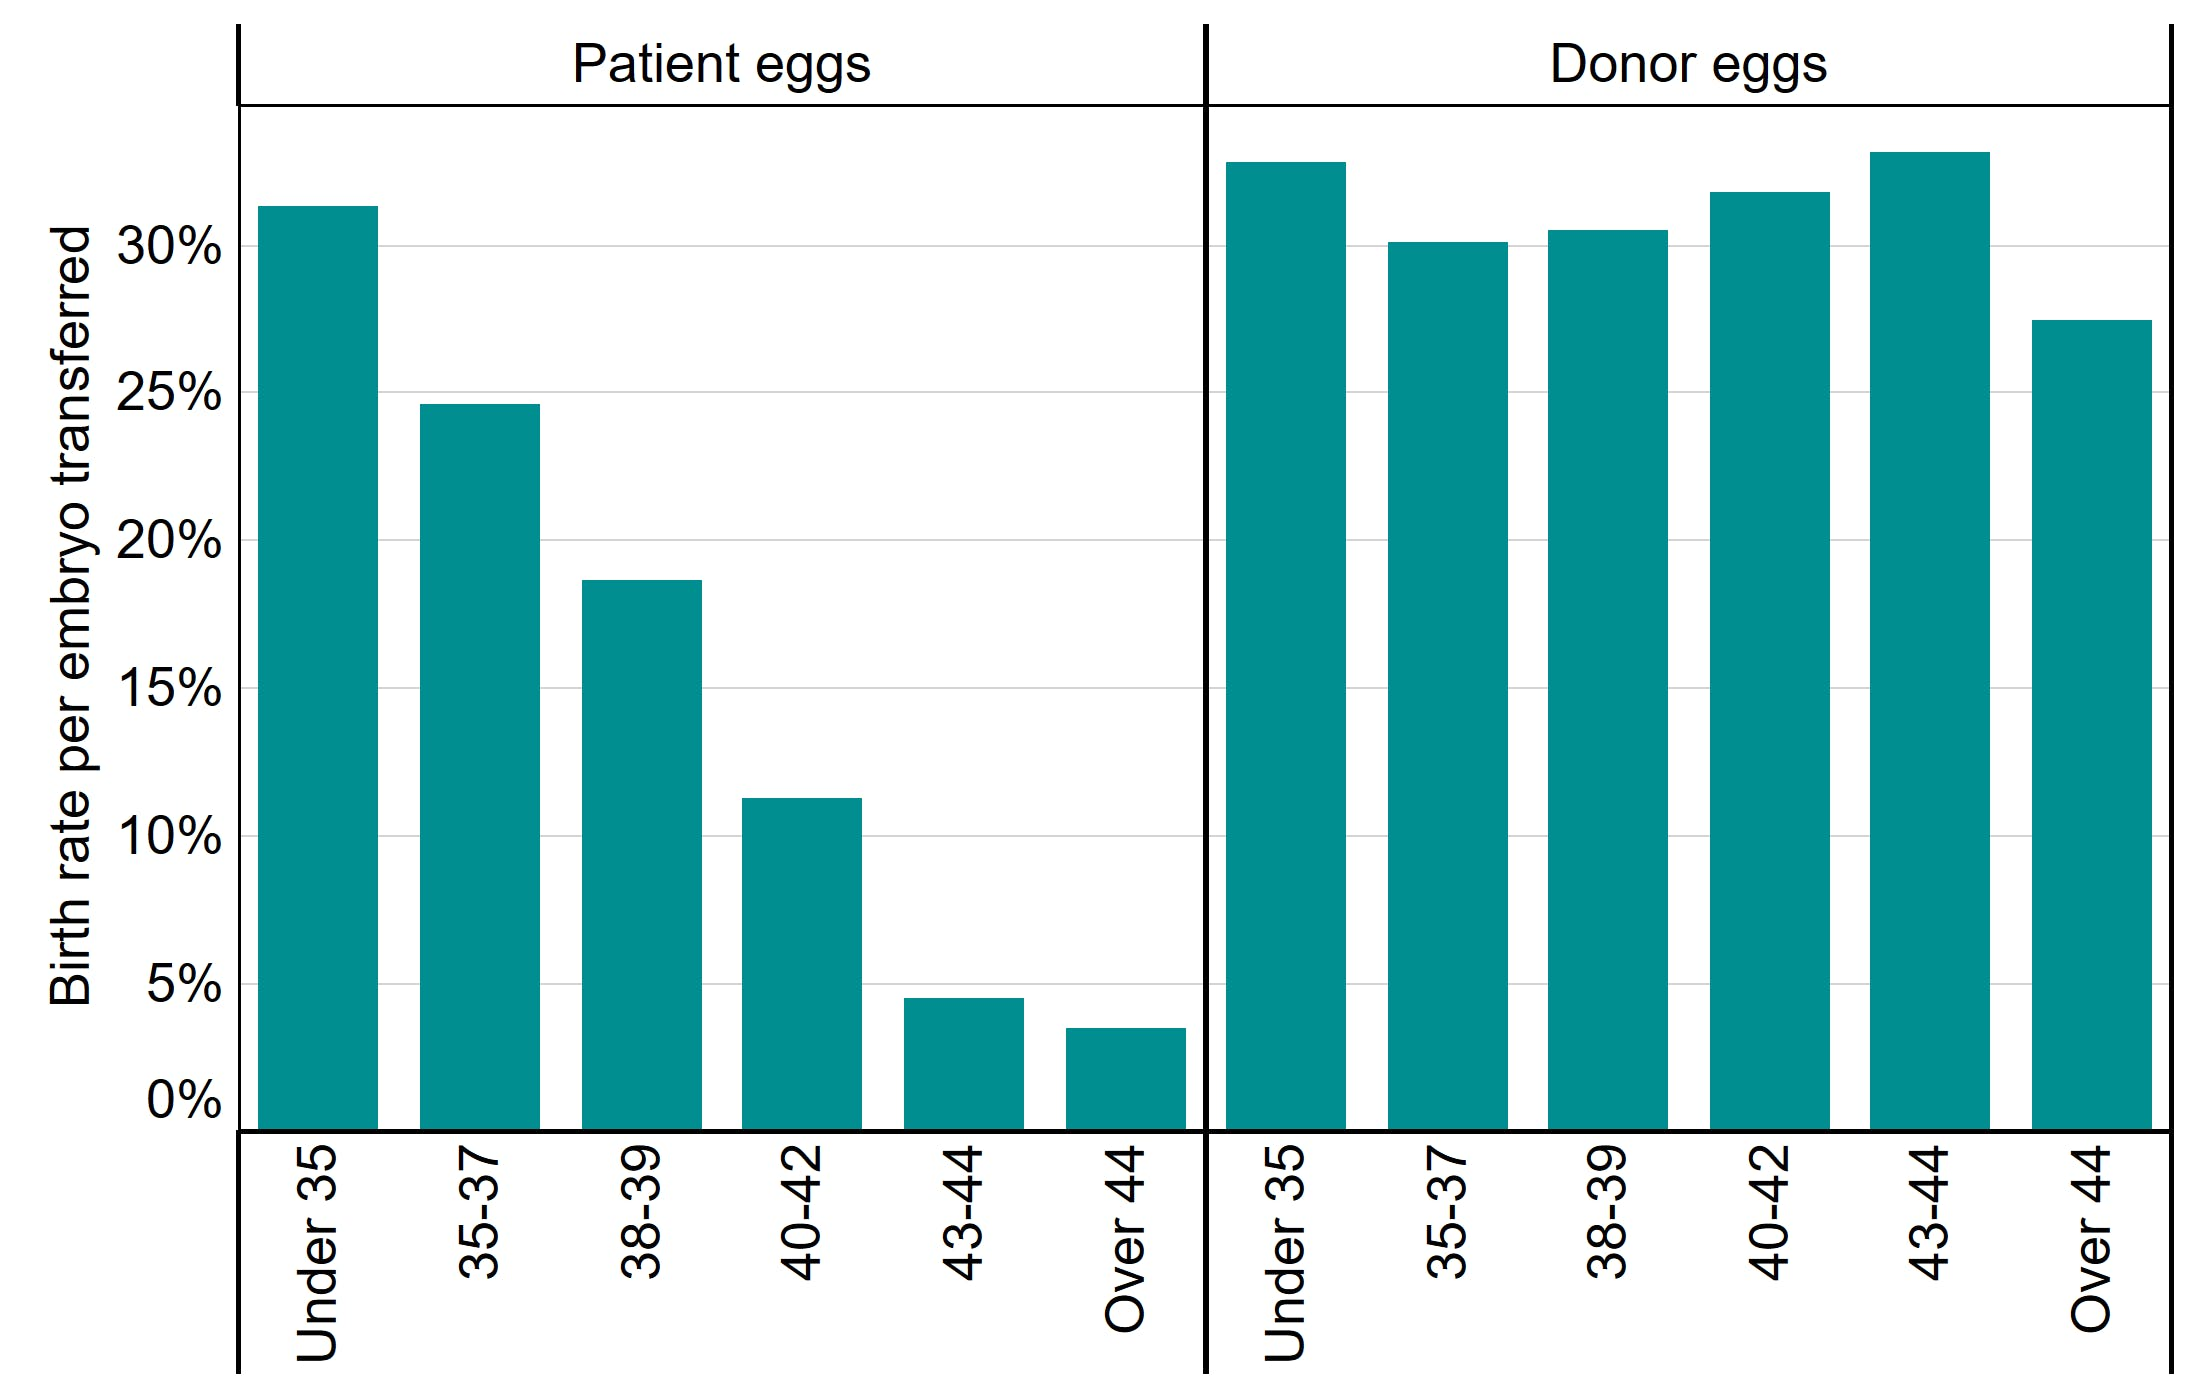 Birth rates remain above 25% for all ages where donor eggs are used